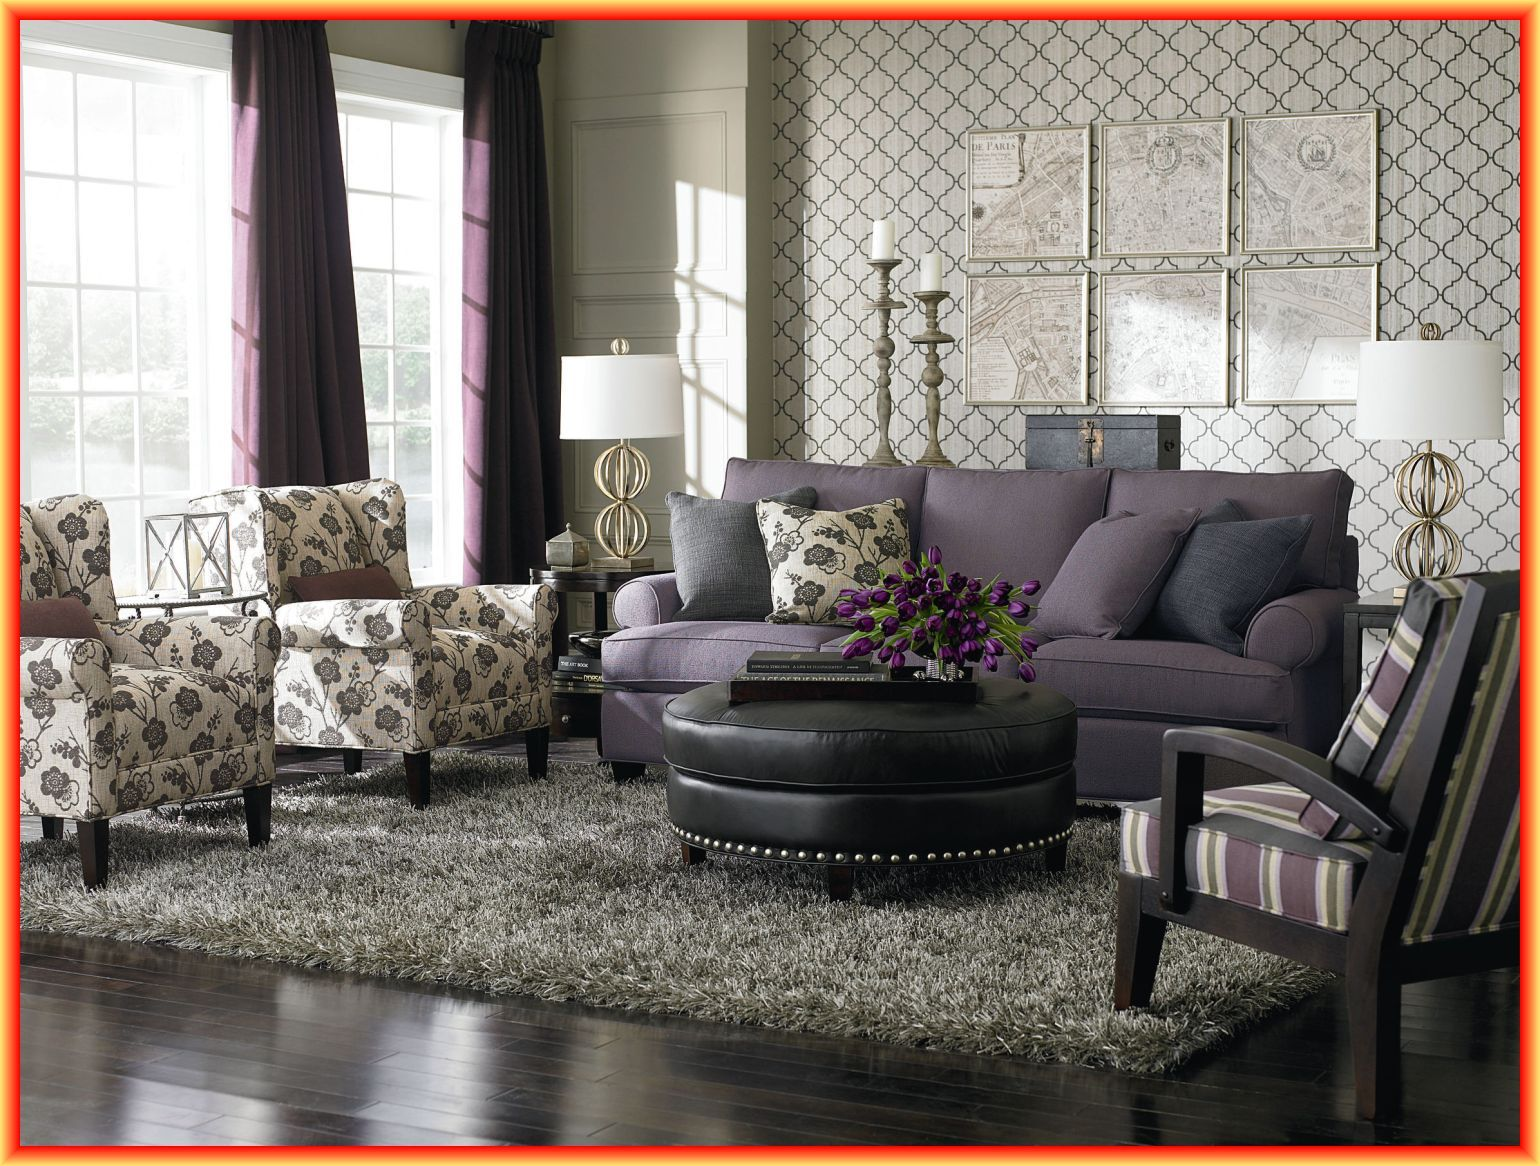 20 Elegant Lounge Room Near Me in 2020   Contemporary ...